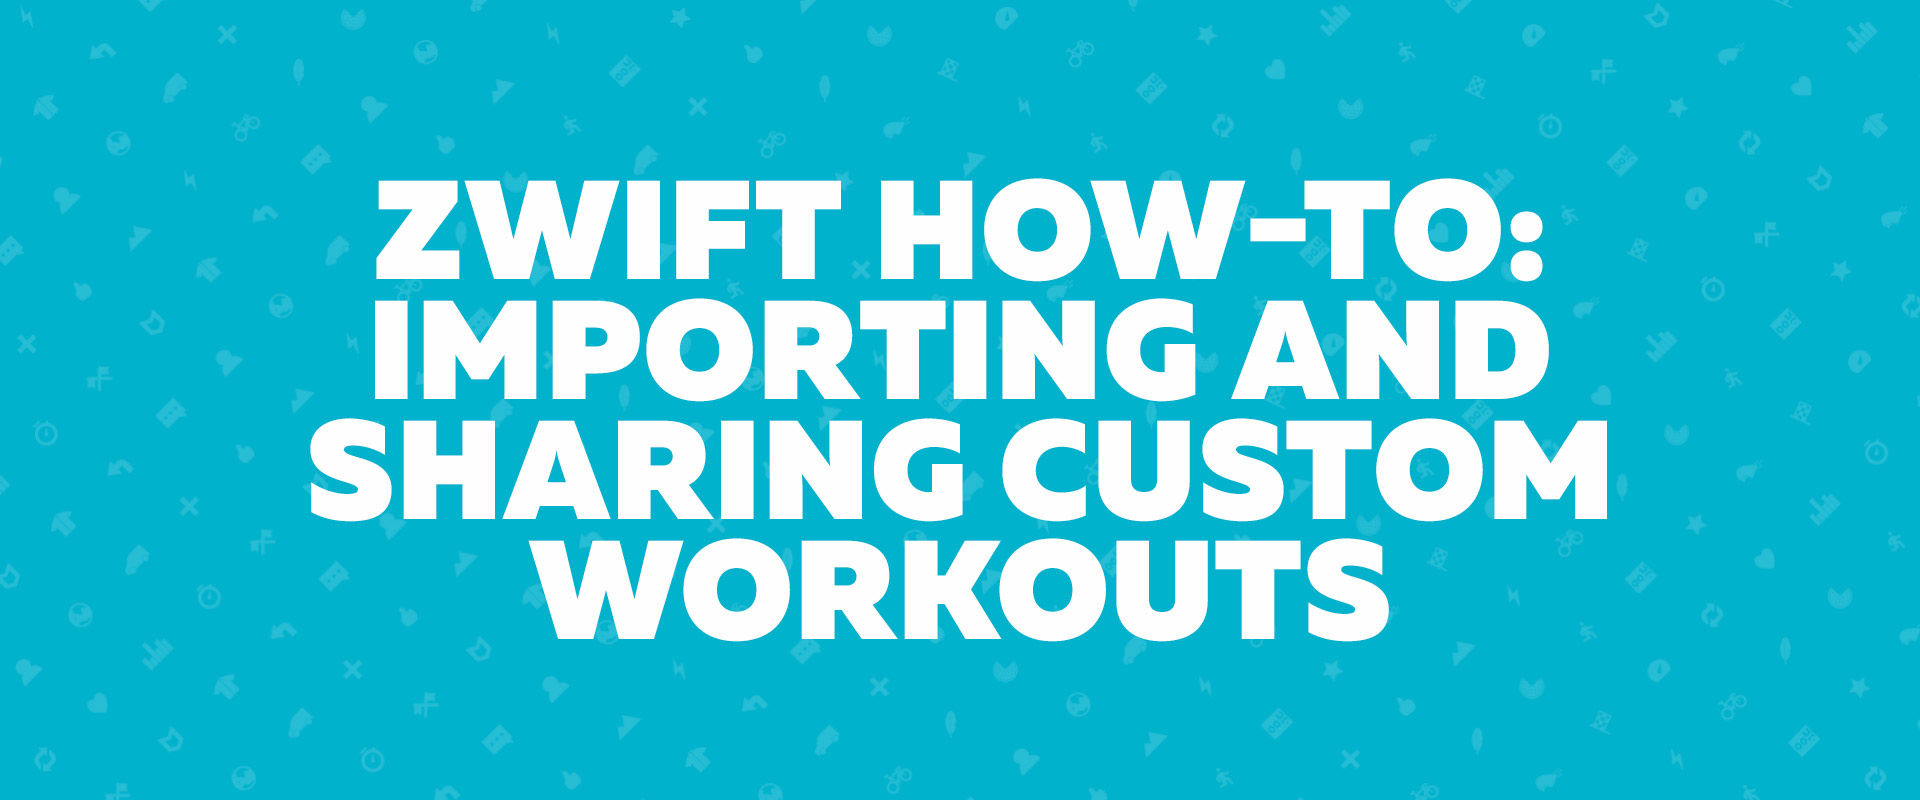 Zwift How-to: Importing and Sharing Custom Workouts | Zwift